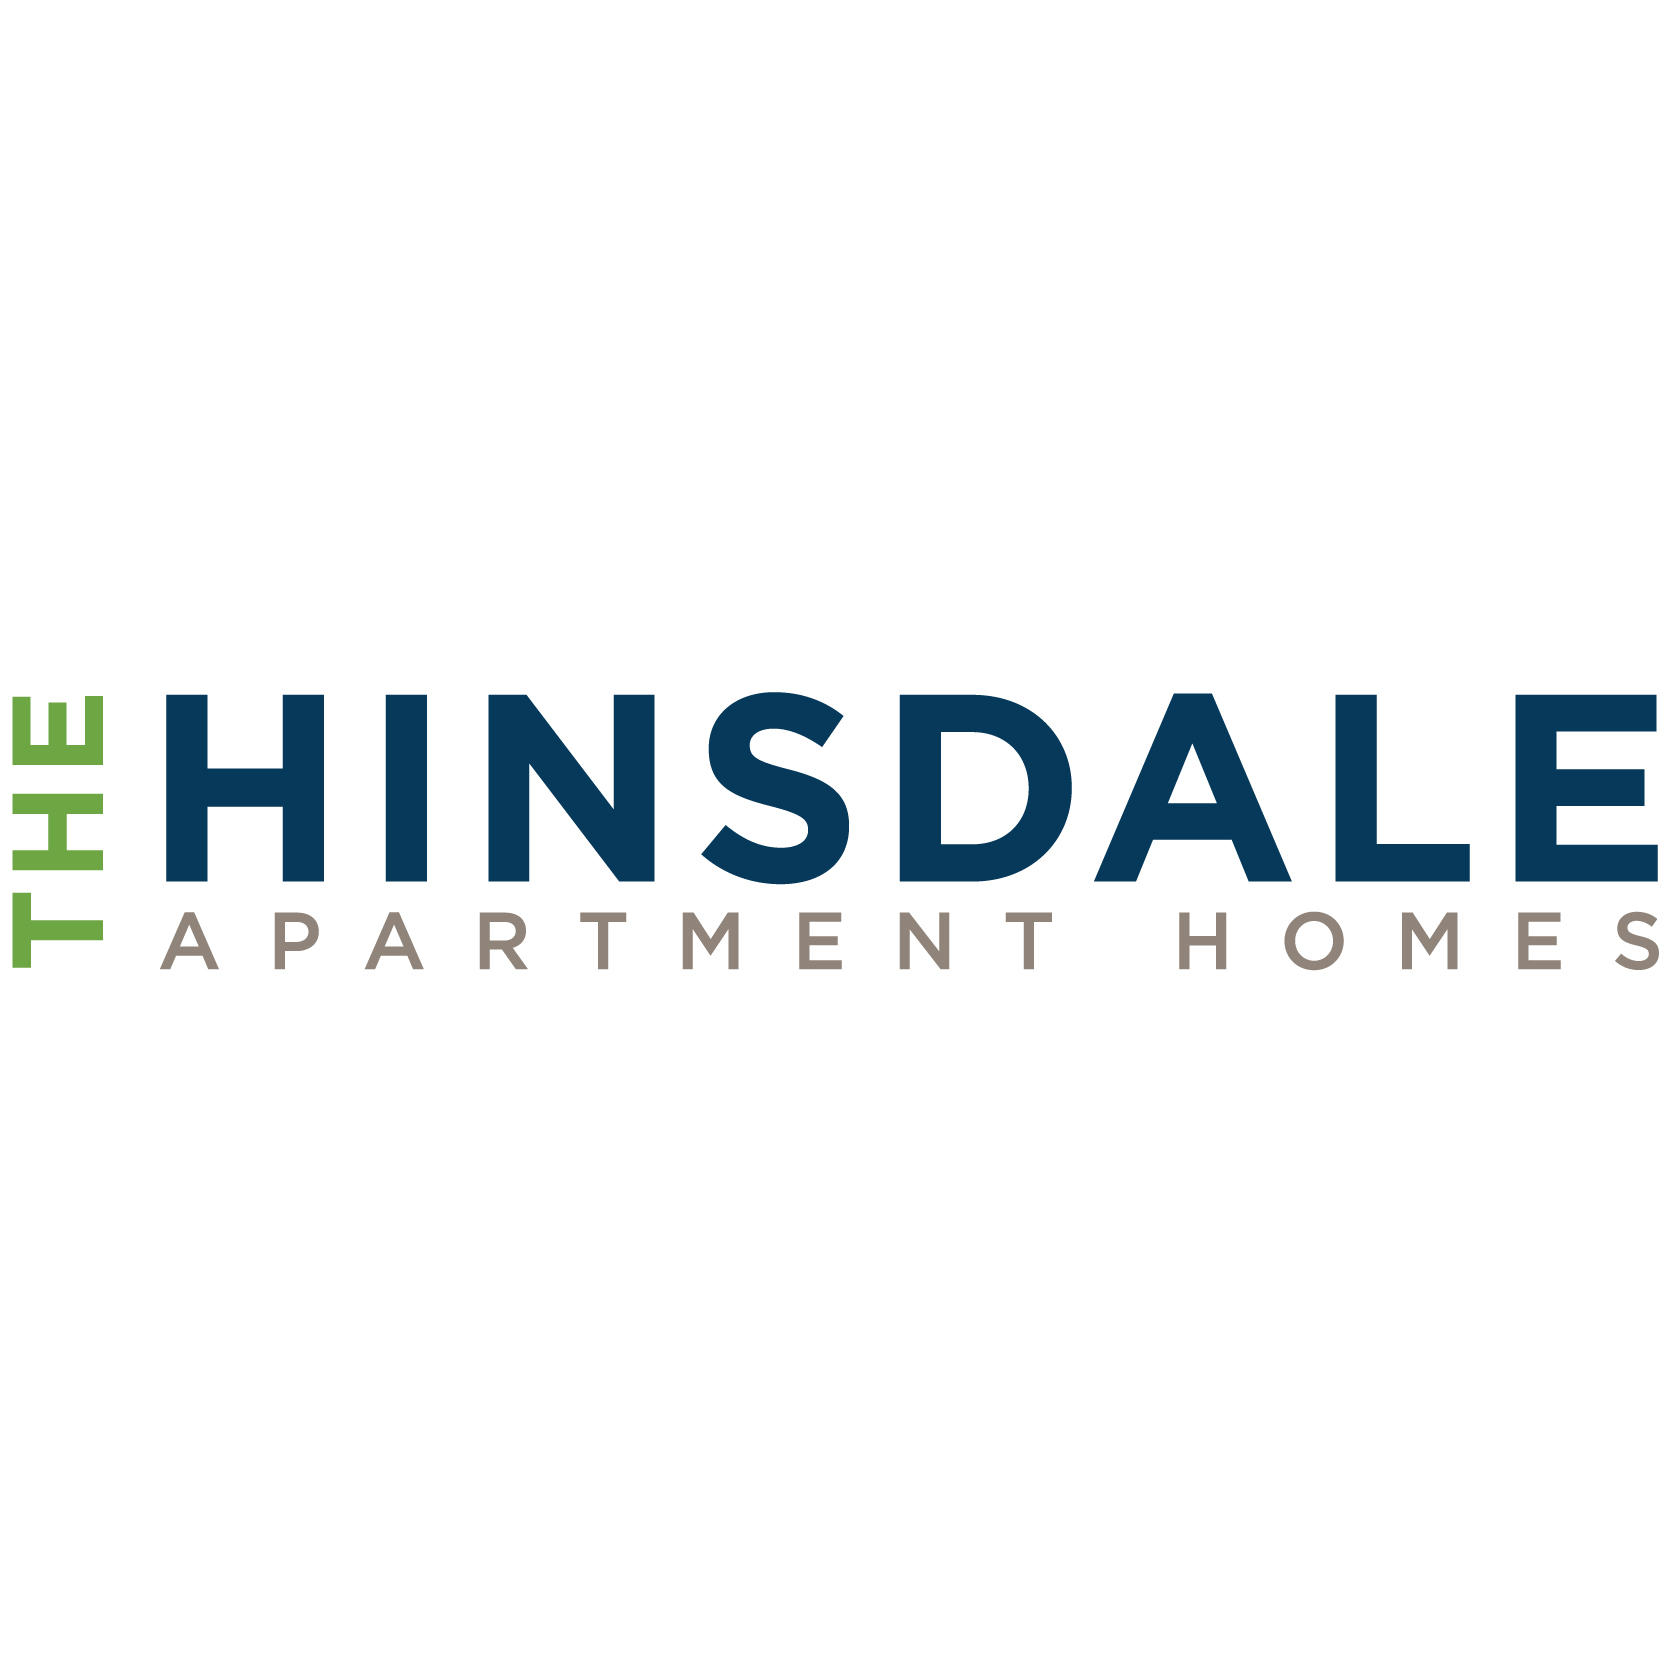 The Hinsdale Apartment Homes